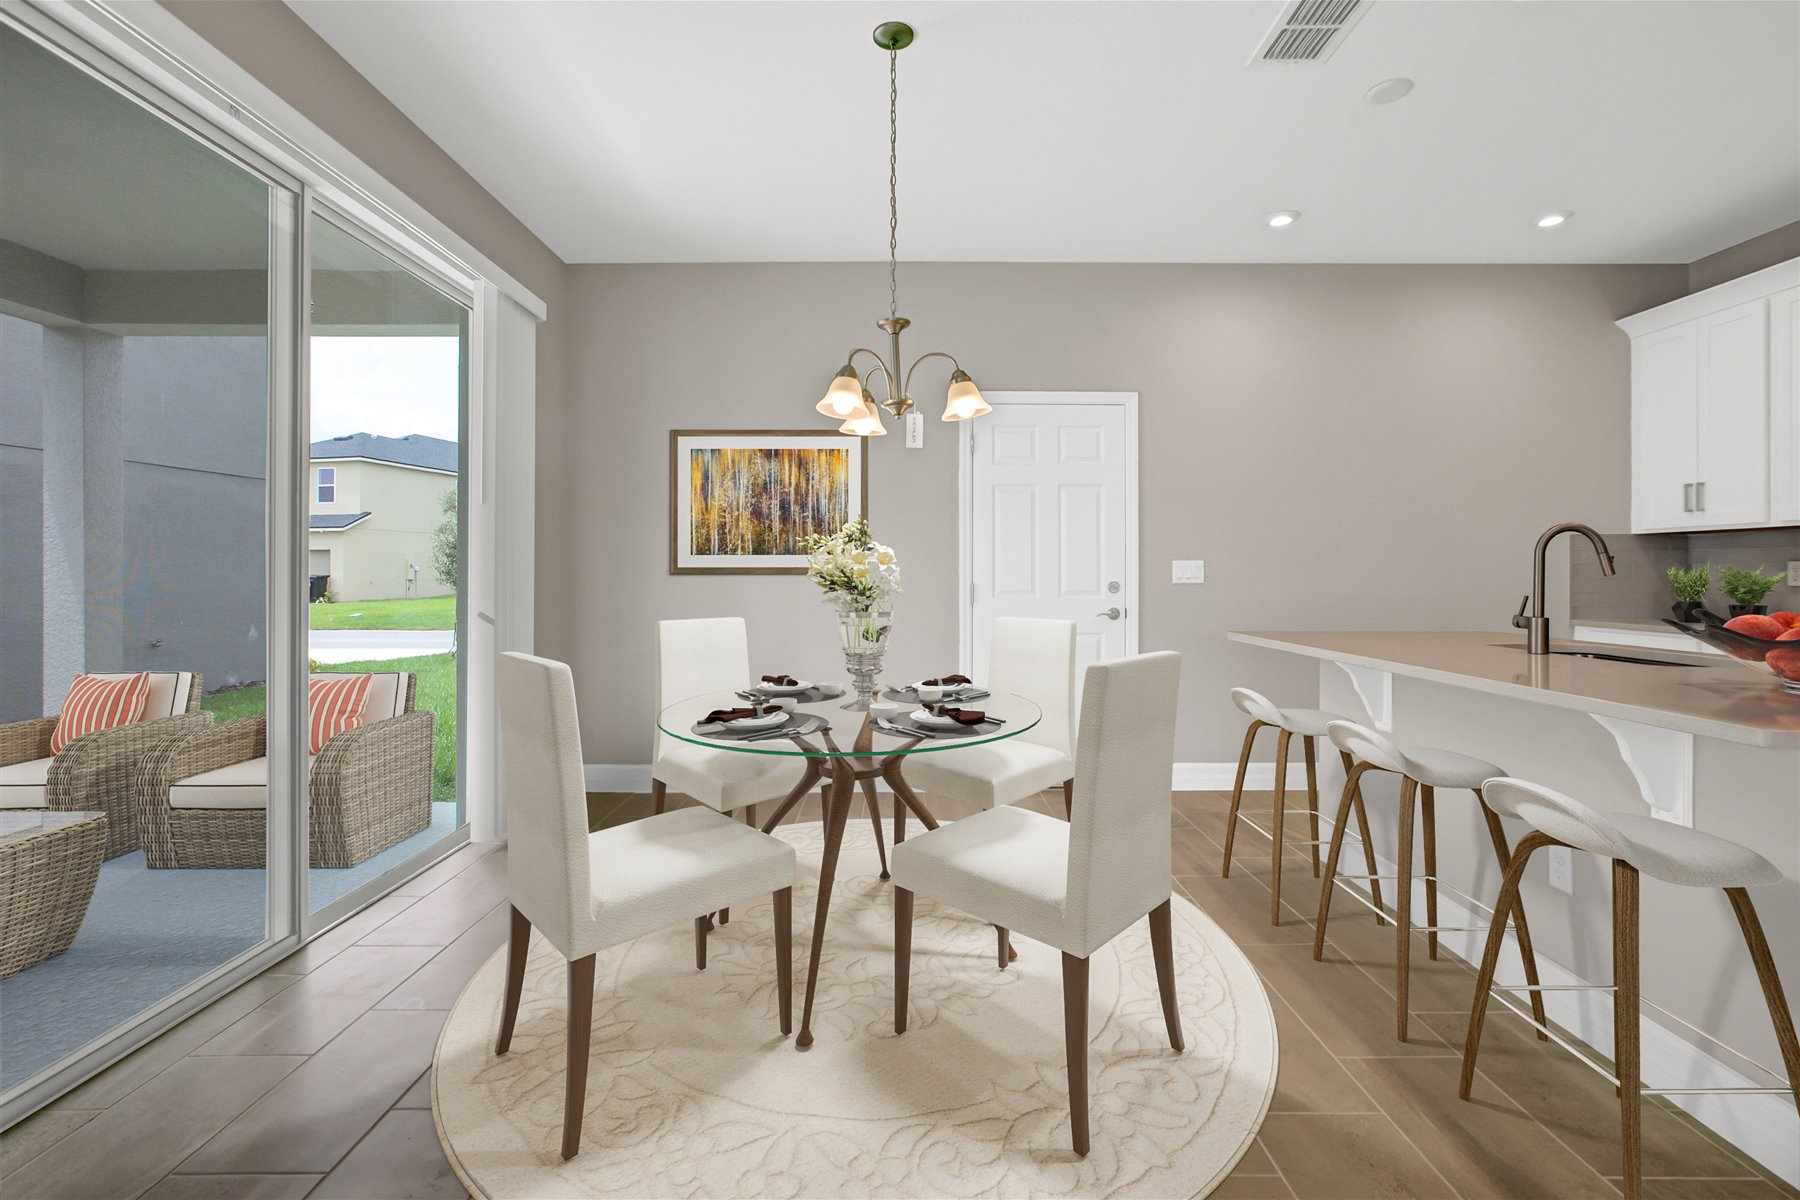 Belmont Plan Breakfast at Tohoqua in Kissimmee Florida by Mattamy Homes